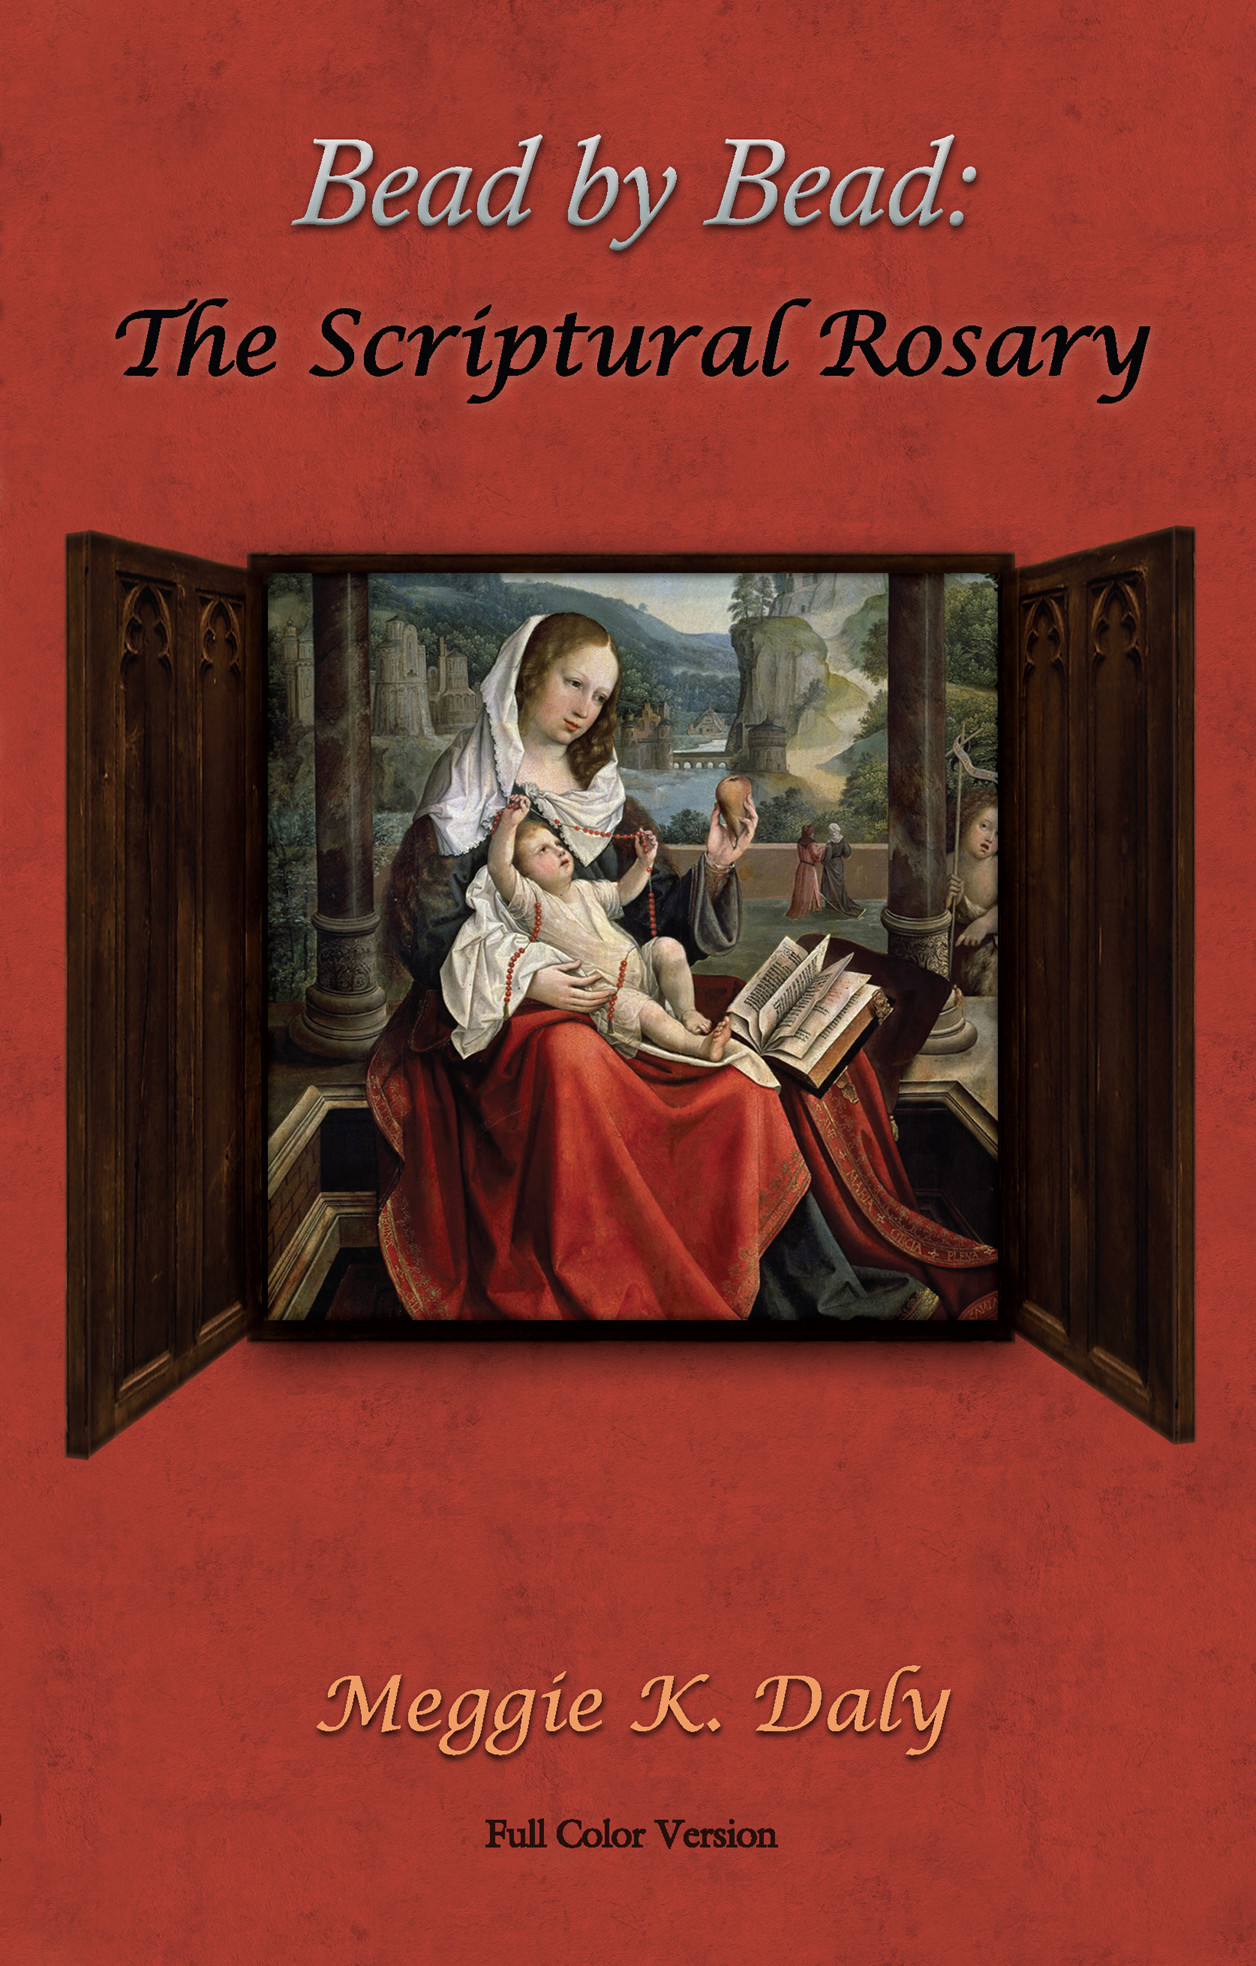 Bead by Bead: The Scriptural Rosary by Meggie K. Daly